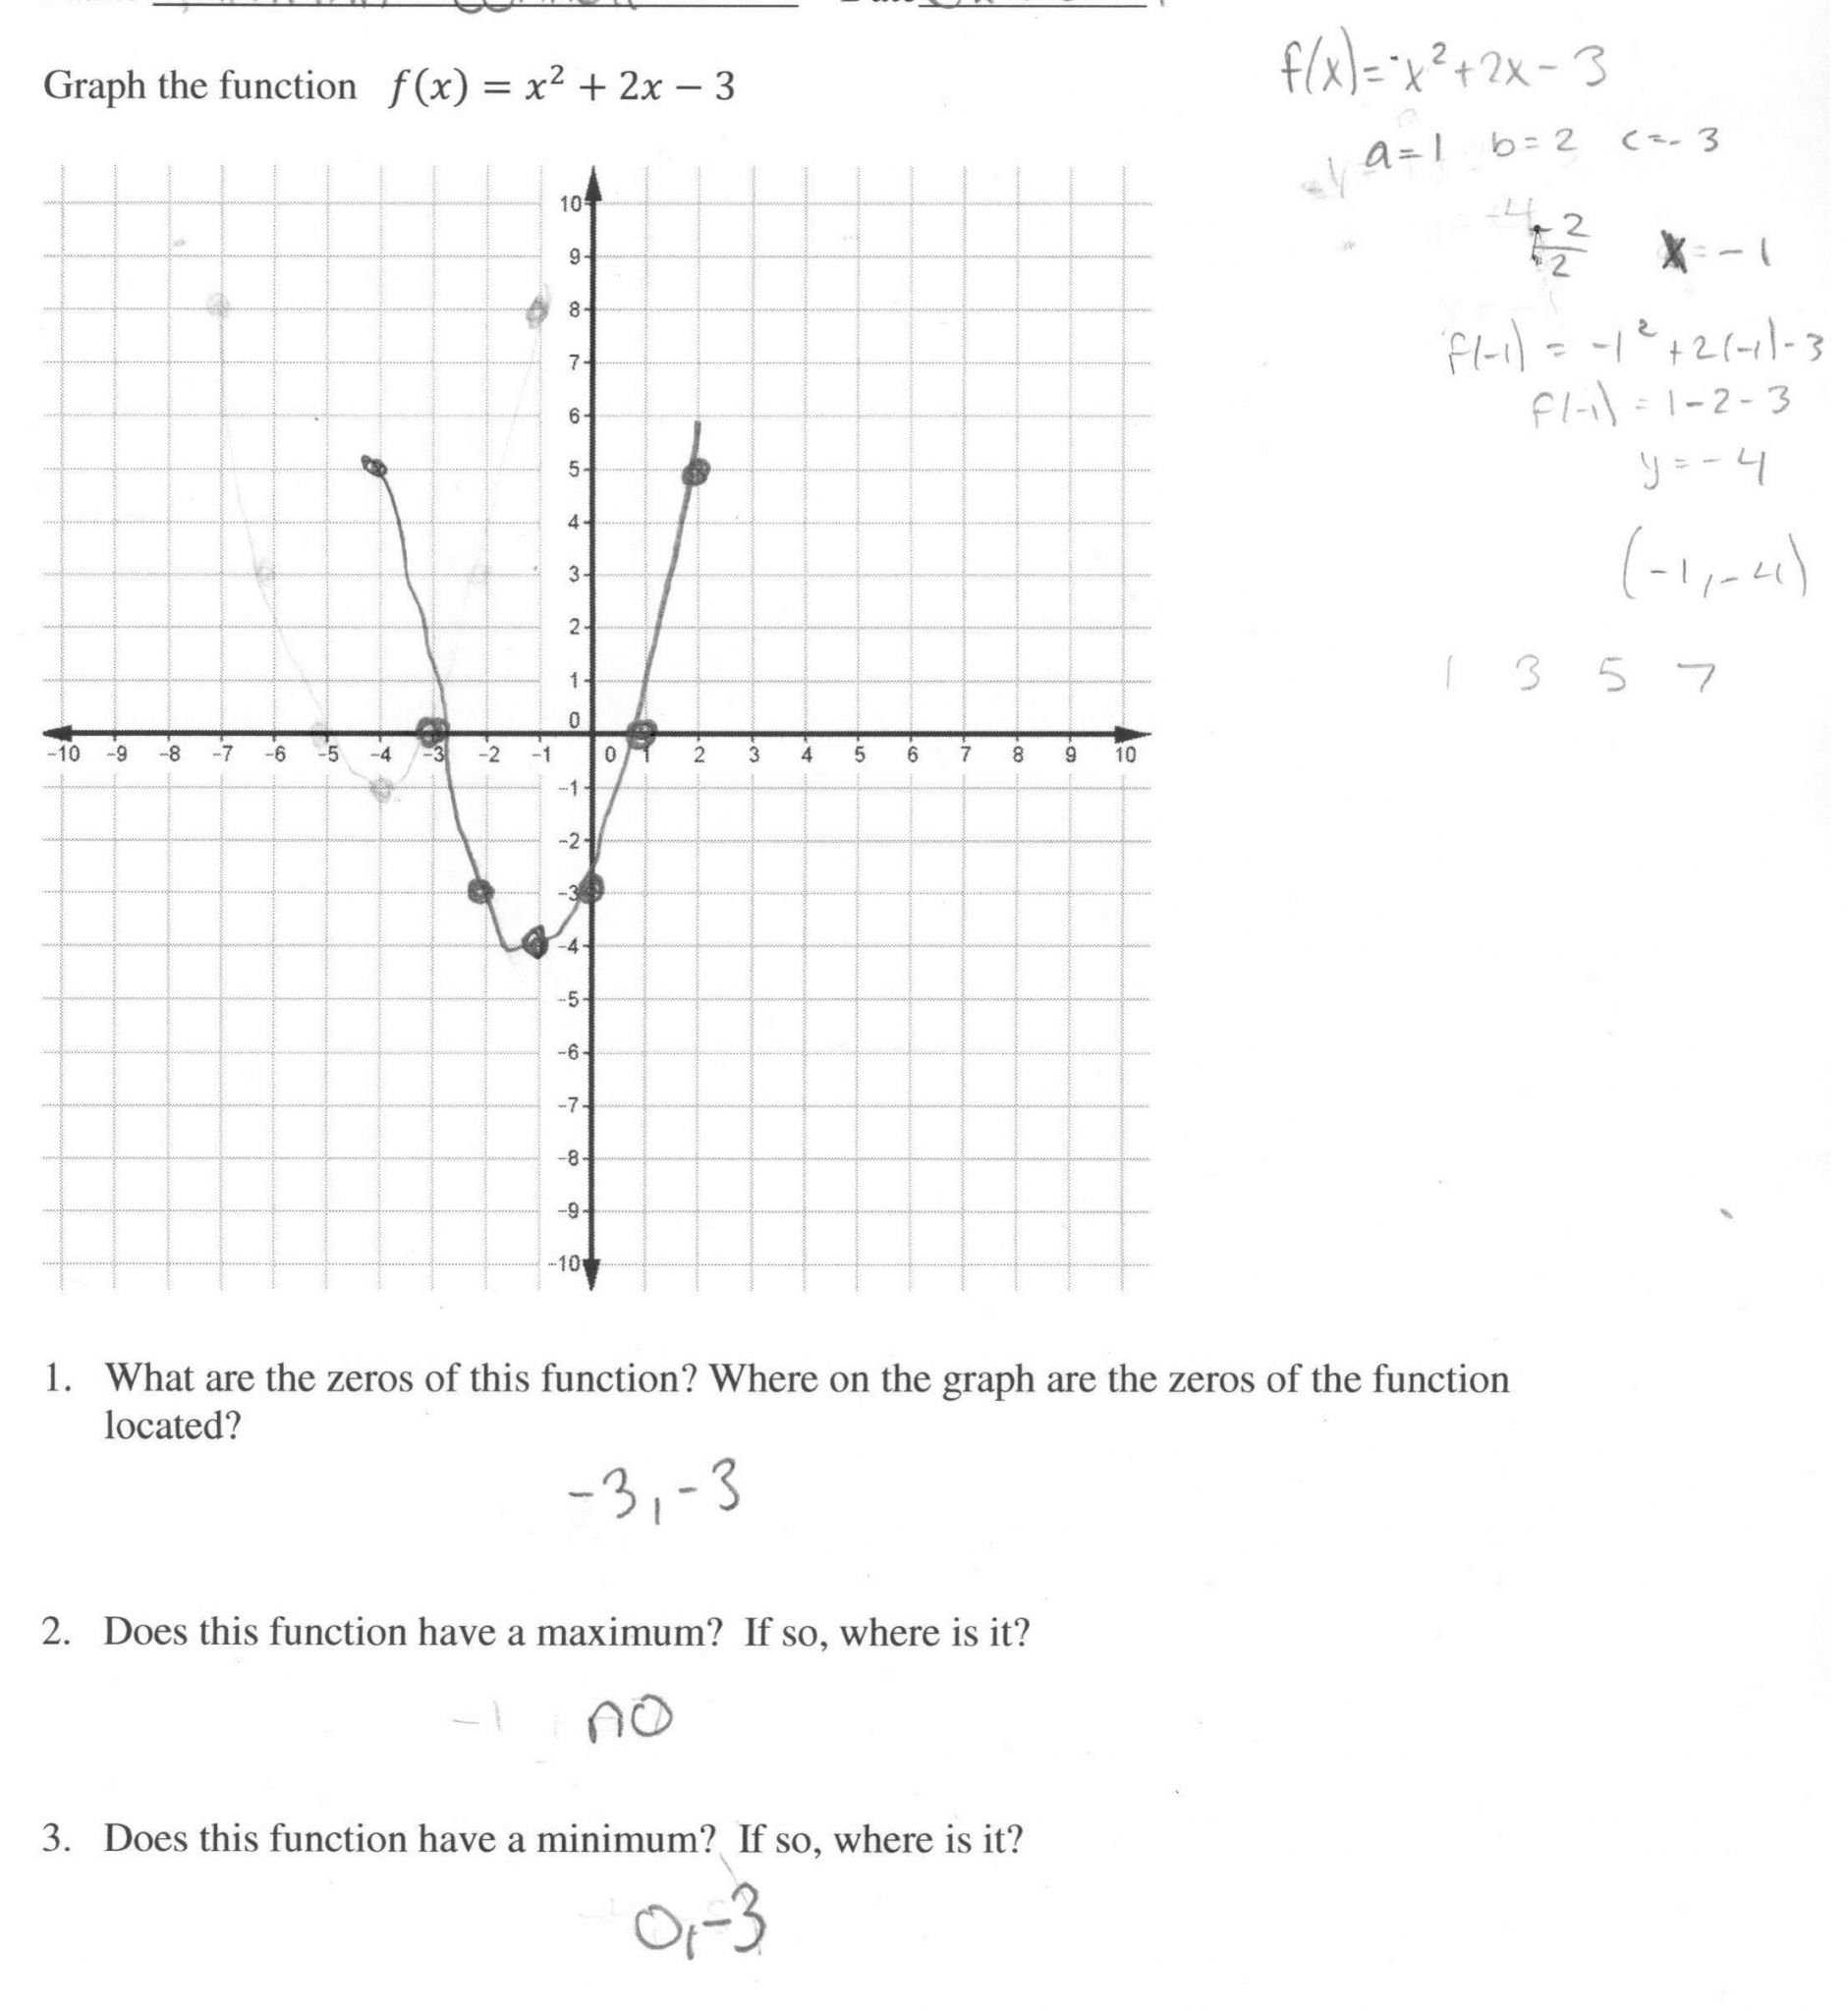 Graphing Quadratics Review Worksheet Answers  Briefencounters Intended For Graphing Quadratics Review Worksheet Answers